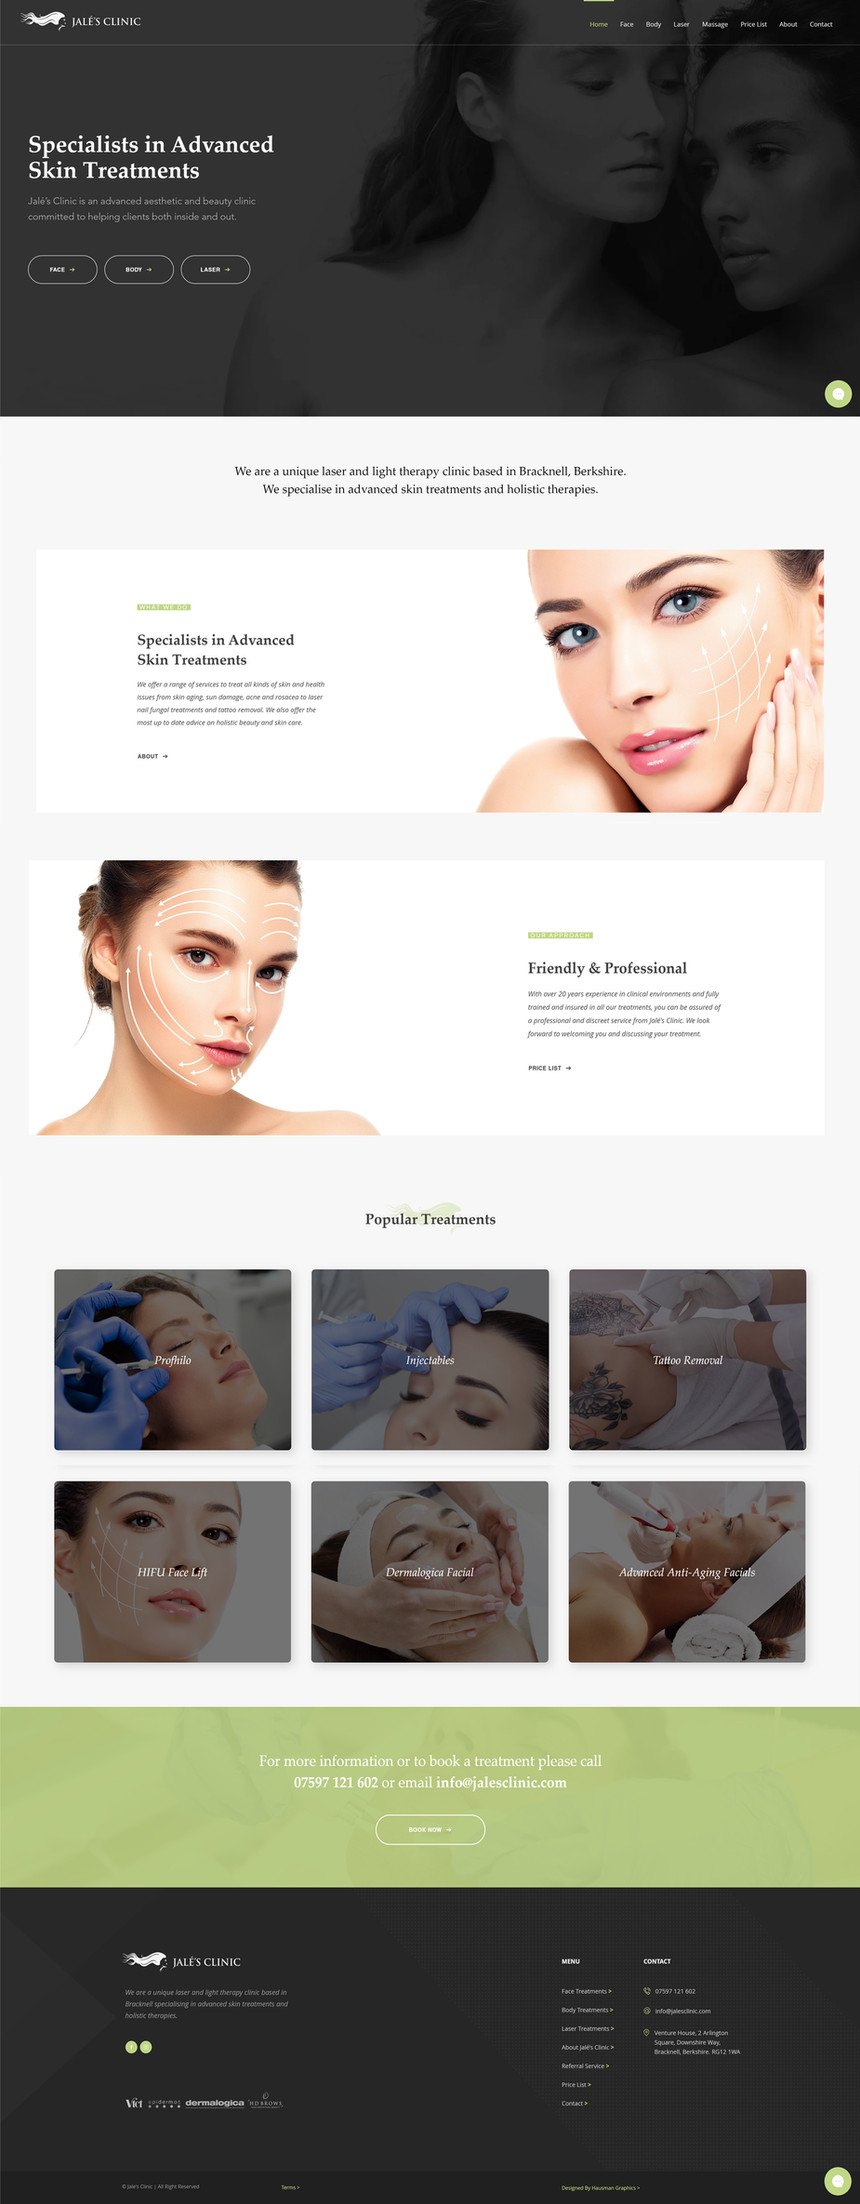 jales-clinic-full-pagejpg